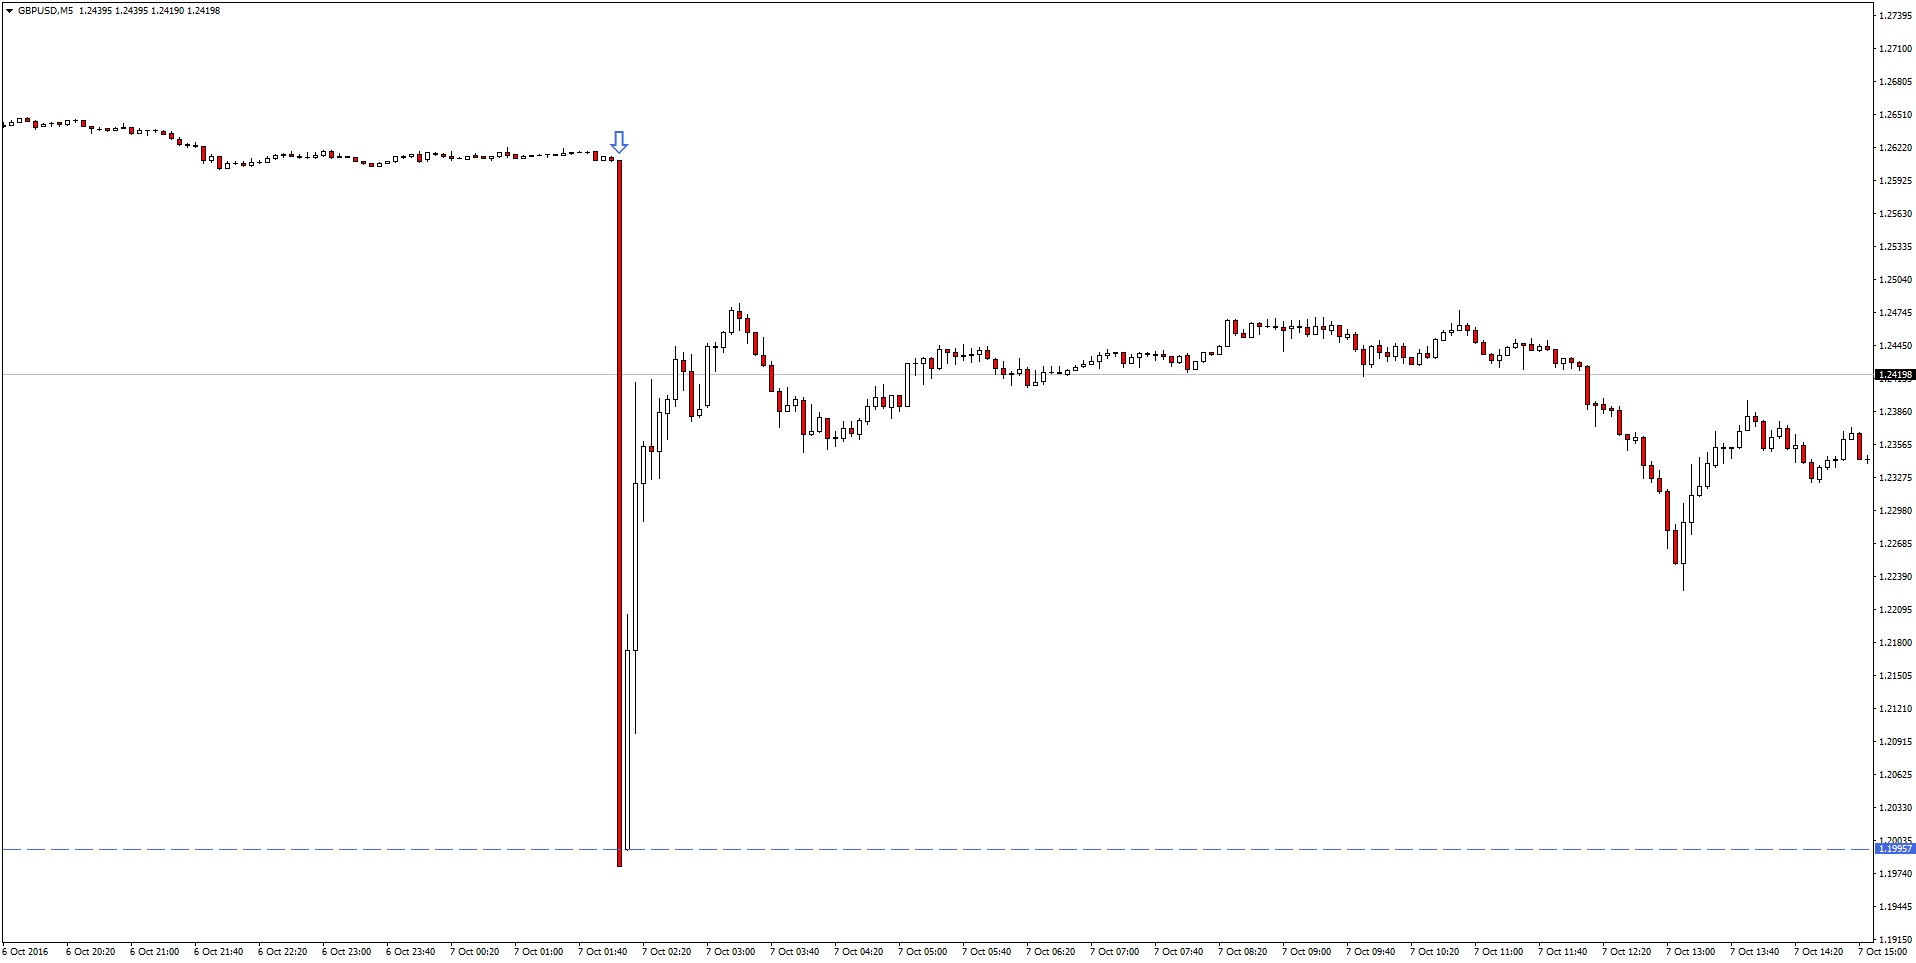 gbpusd 5 minute showing recent market crash move